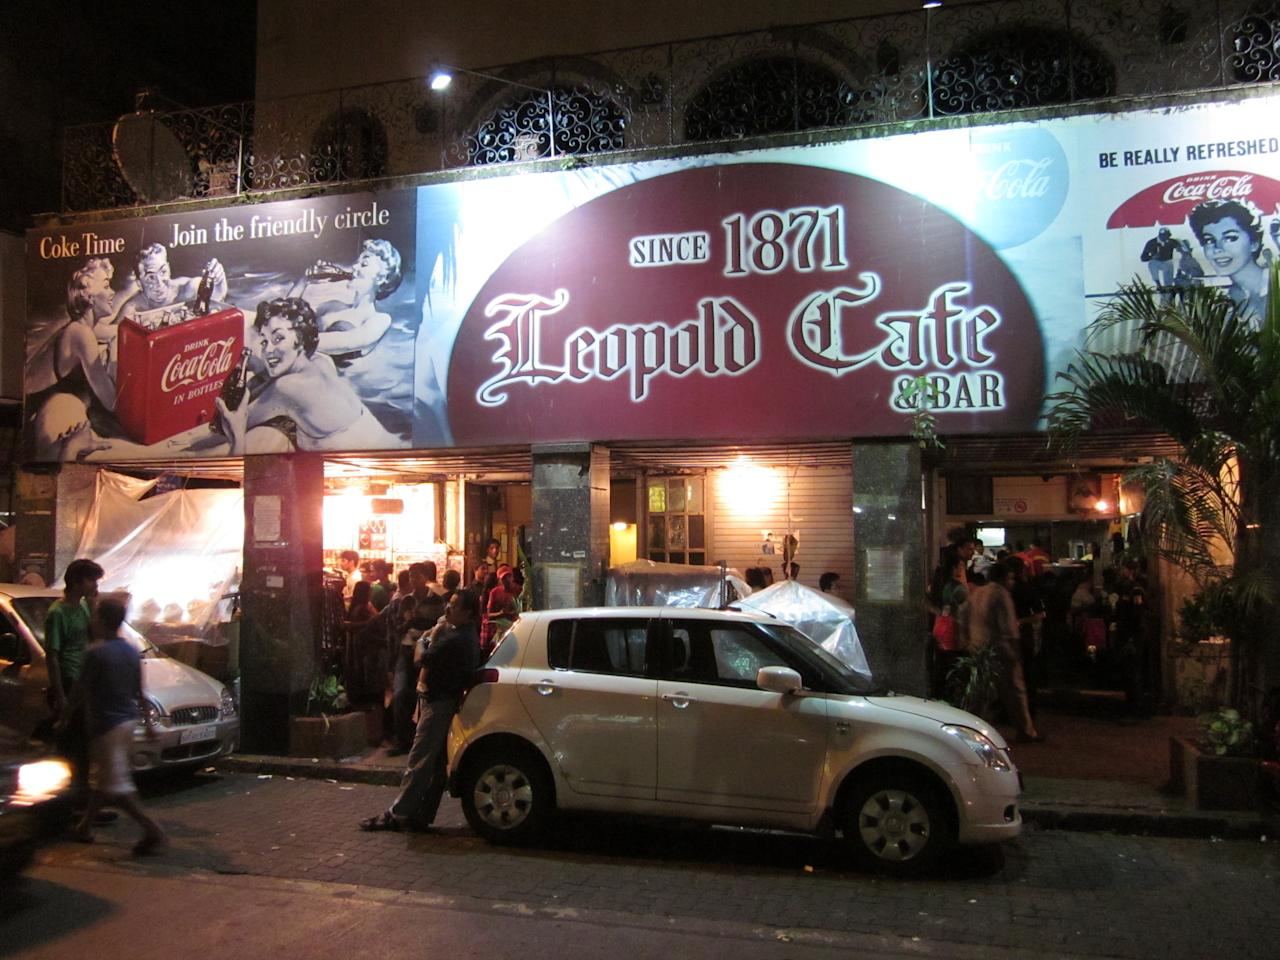 The bar along Mumbai's famous Colaba Causeway is also one of the symbols of the city's resilience. One of the many spots to have come under attack on November 26, 2008, Leopold forms an important part of the narrative in Gregory David Roberts' novel Shantaram. From burgers to desserts and a small menu of alcohol, Leo's is the classic watering hole of yore. Photograph: Shankar S/Flickr